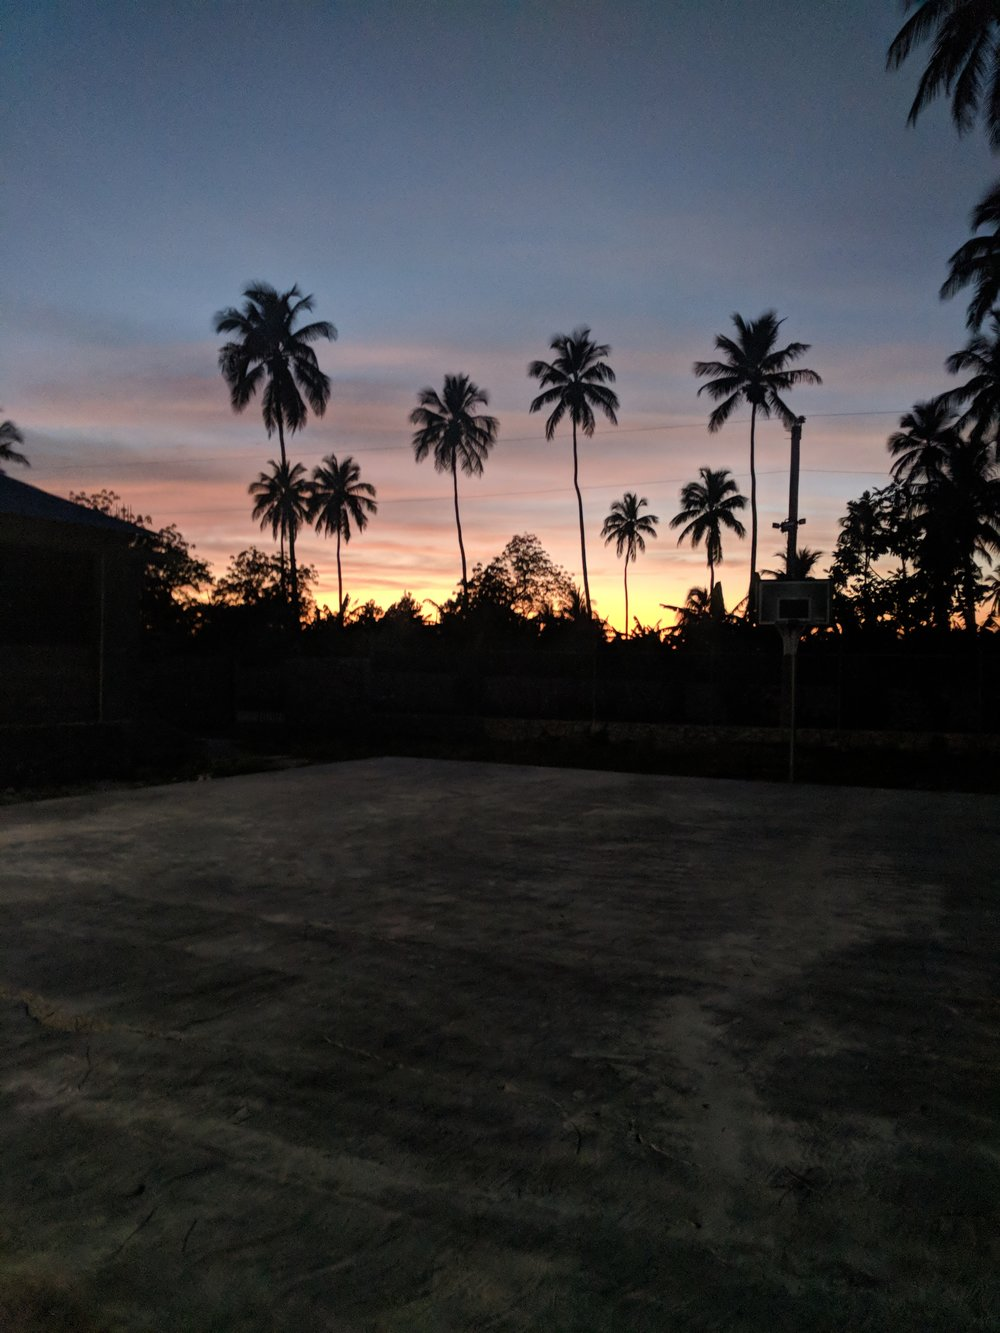 Dusk on the campus of Northwest Haiti Christian Mission in Mole St. Nicolas.